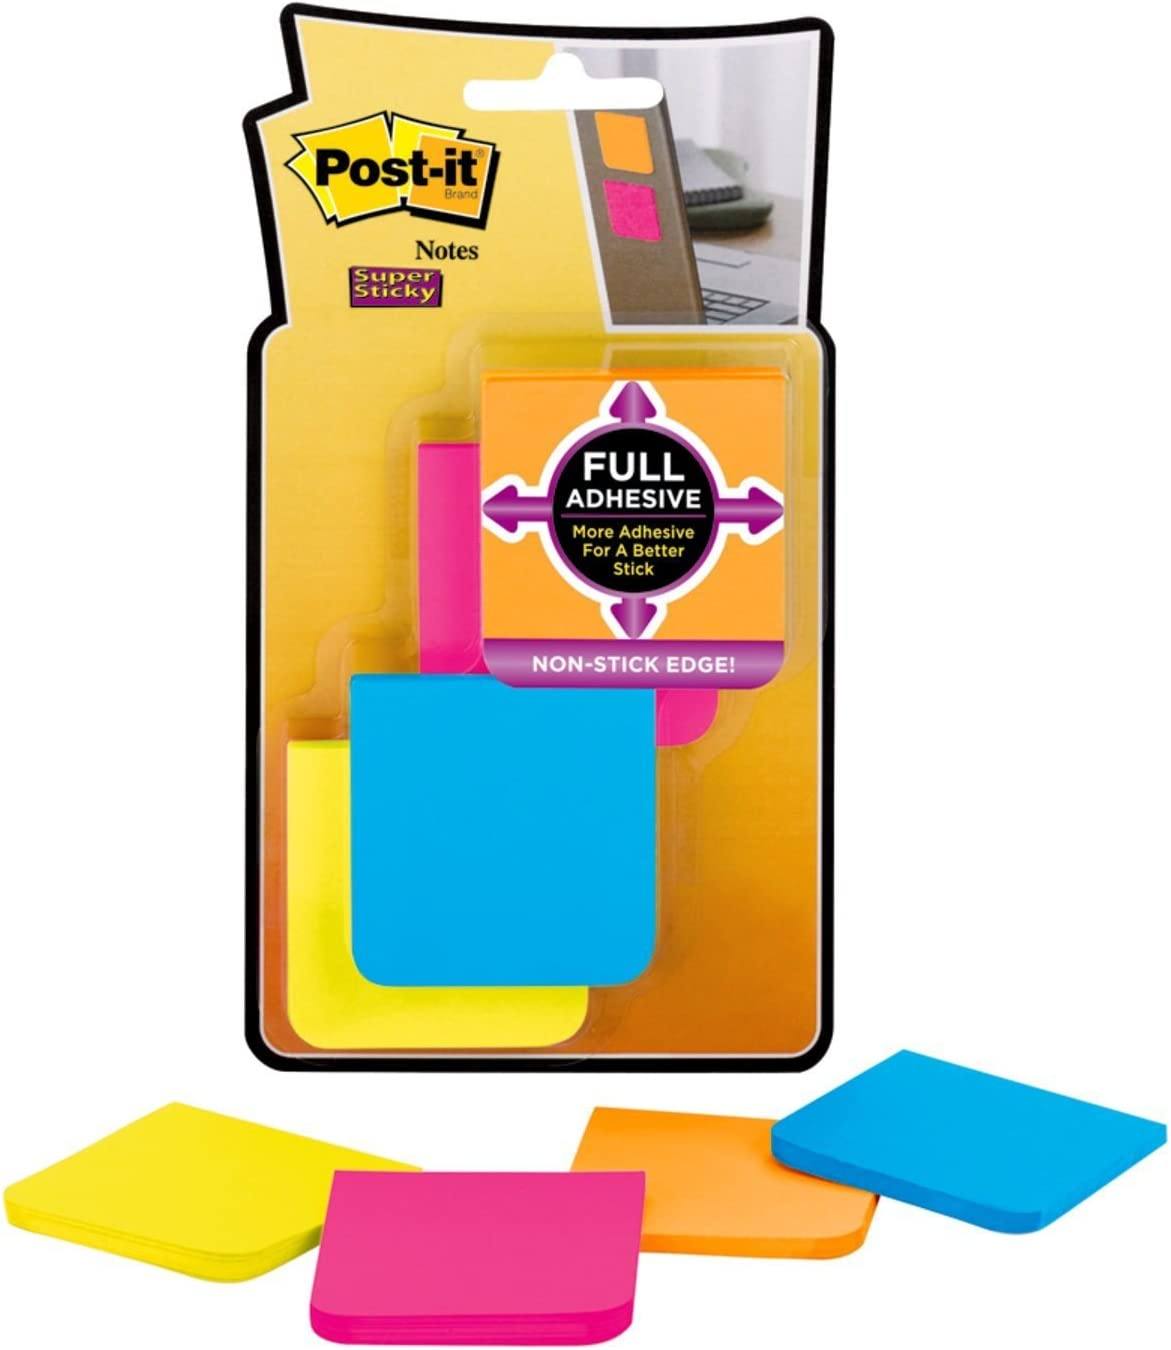 Pack of 8, 25 Notes Per Pad Assorted Colours Post-it Super Sticky 50.8mm x 50.8mm Full Adhesive Notes Pad